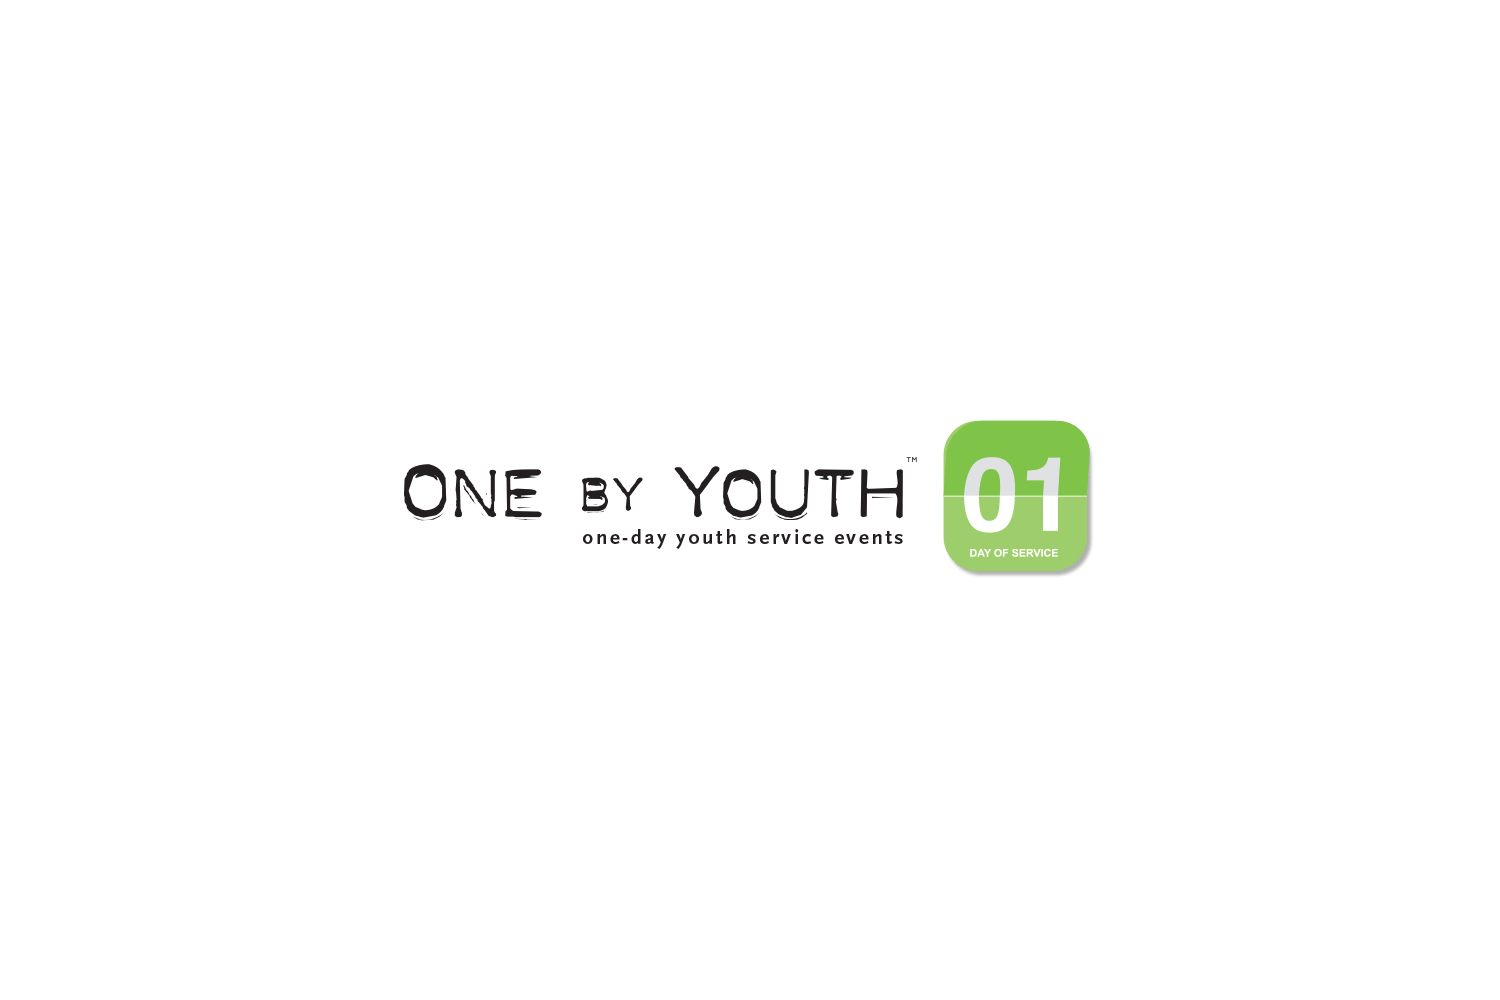 one-by-youth-logo-design